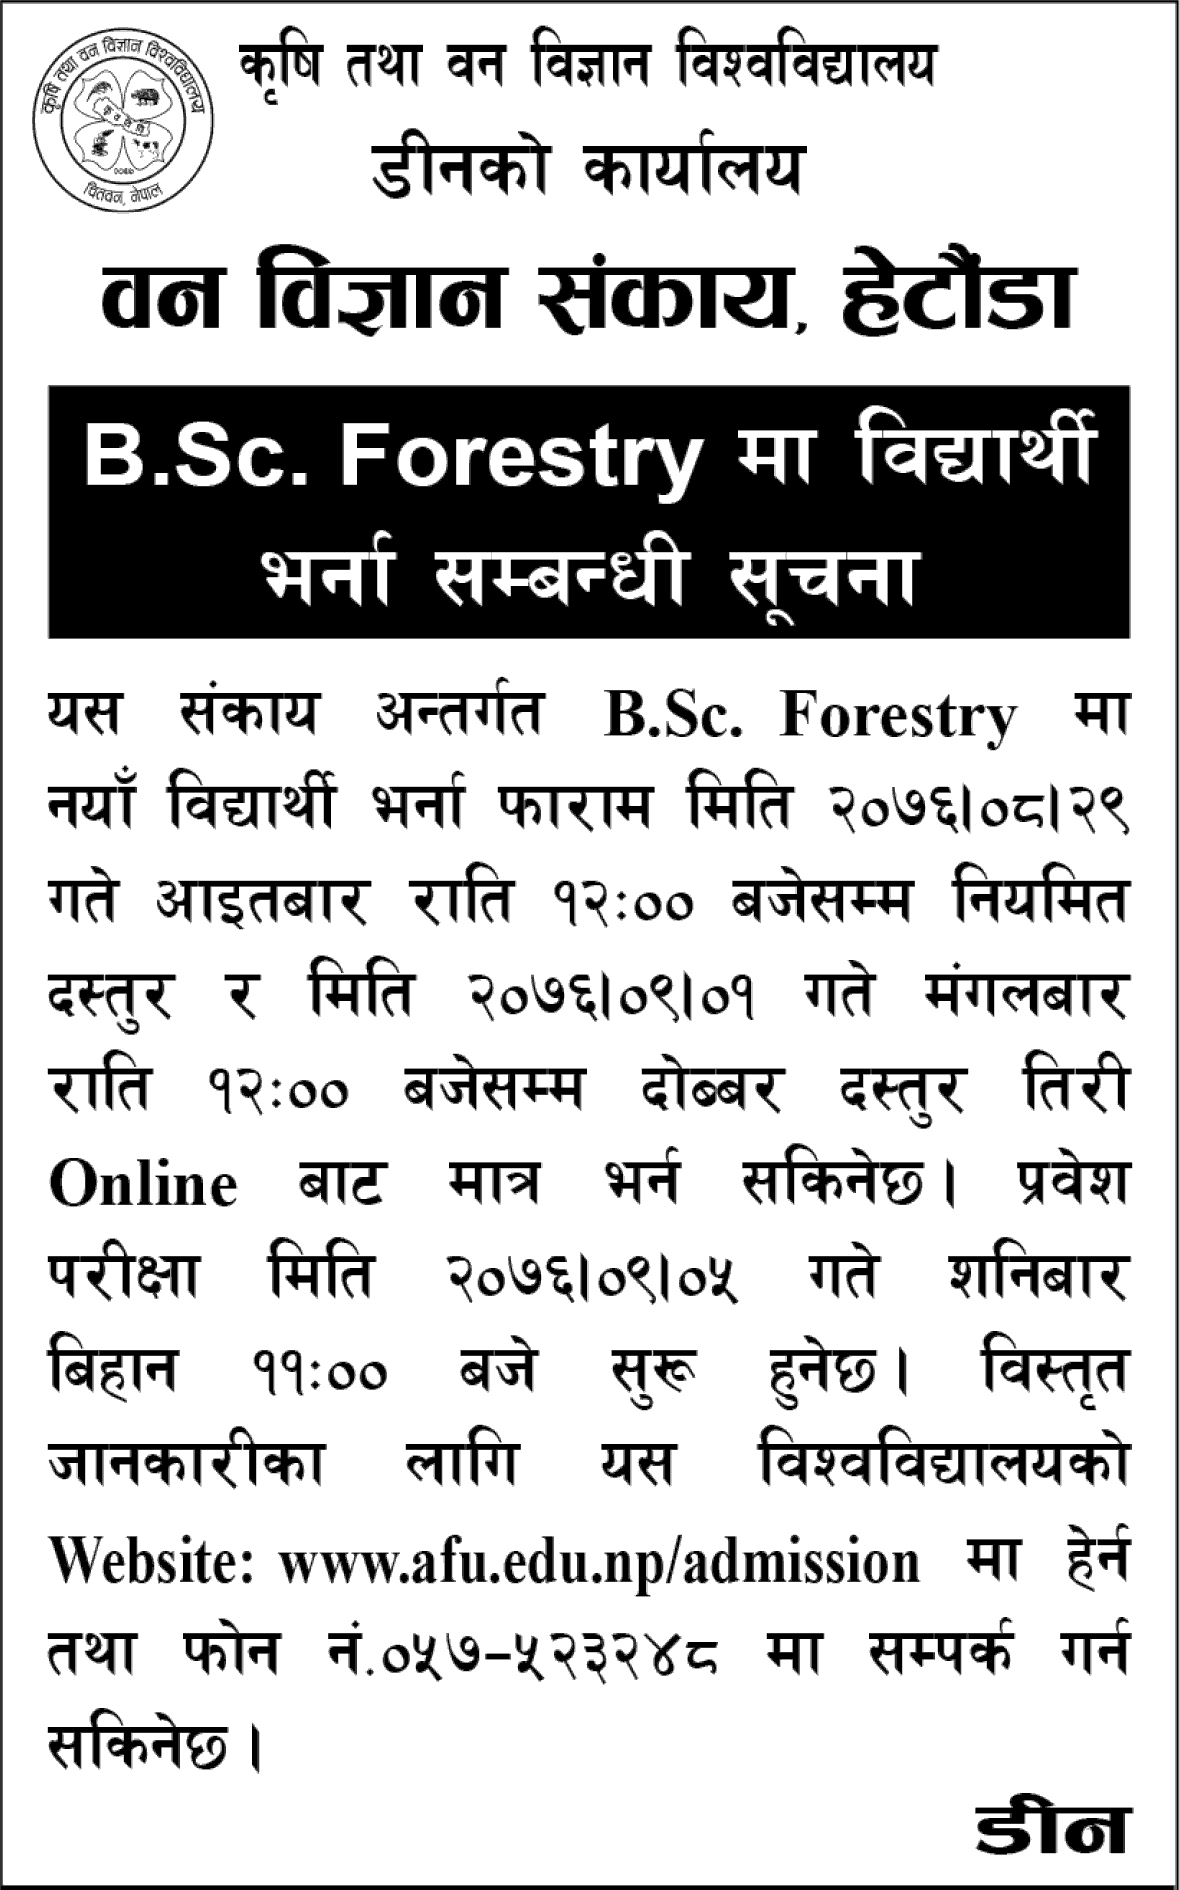 B.Sc. Forestry Admission Open at Agriculture and Forestry